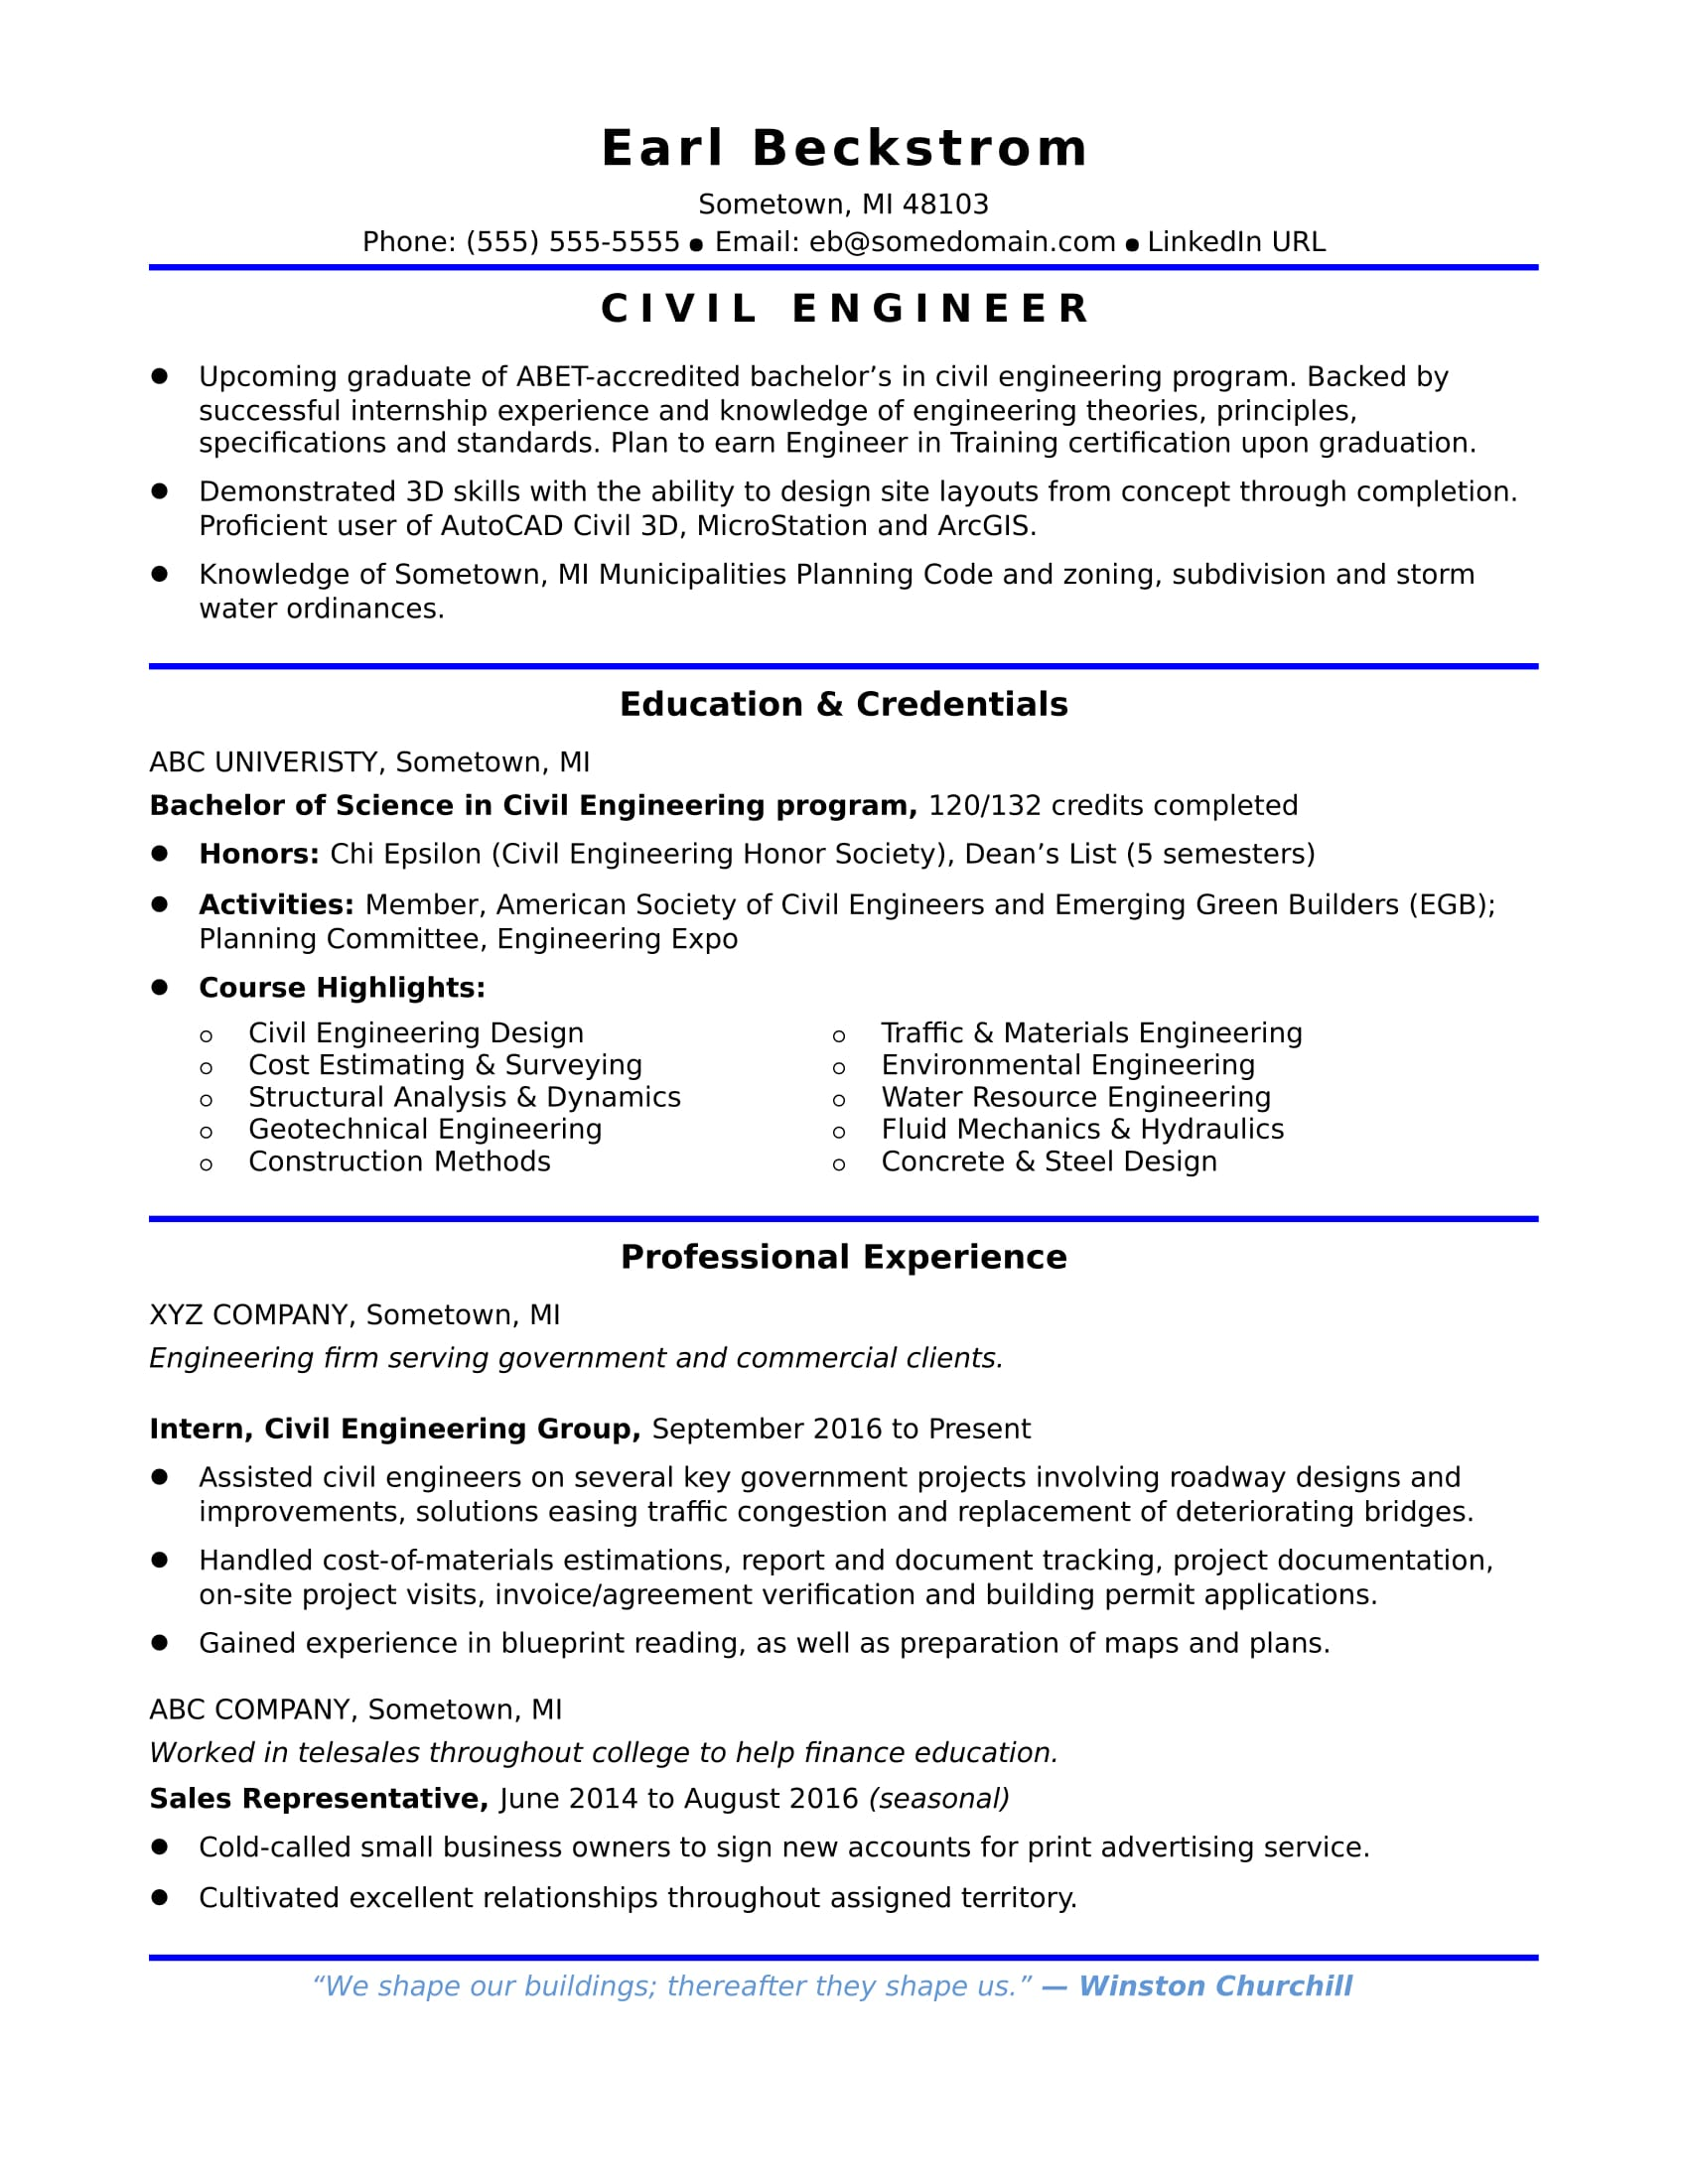 Sample Resume For An Entry Level Civil Engineer  Us Resume Samples